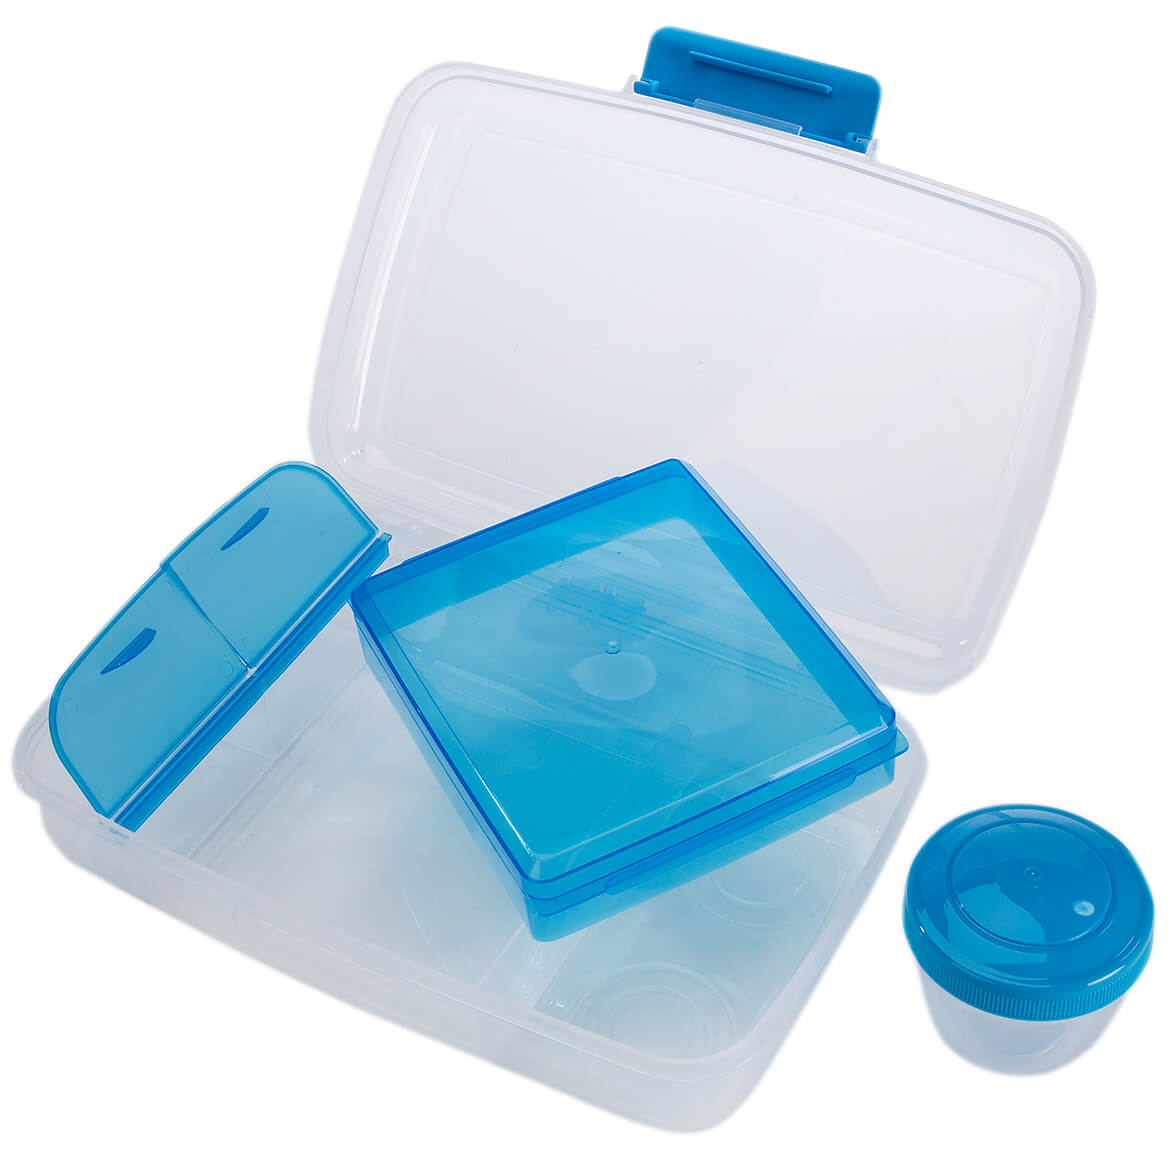 4 Section Bento Lunch Box By Chef's Pride-368394